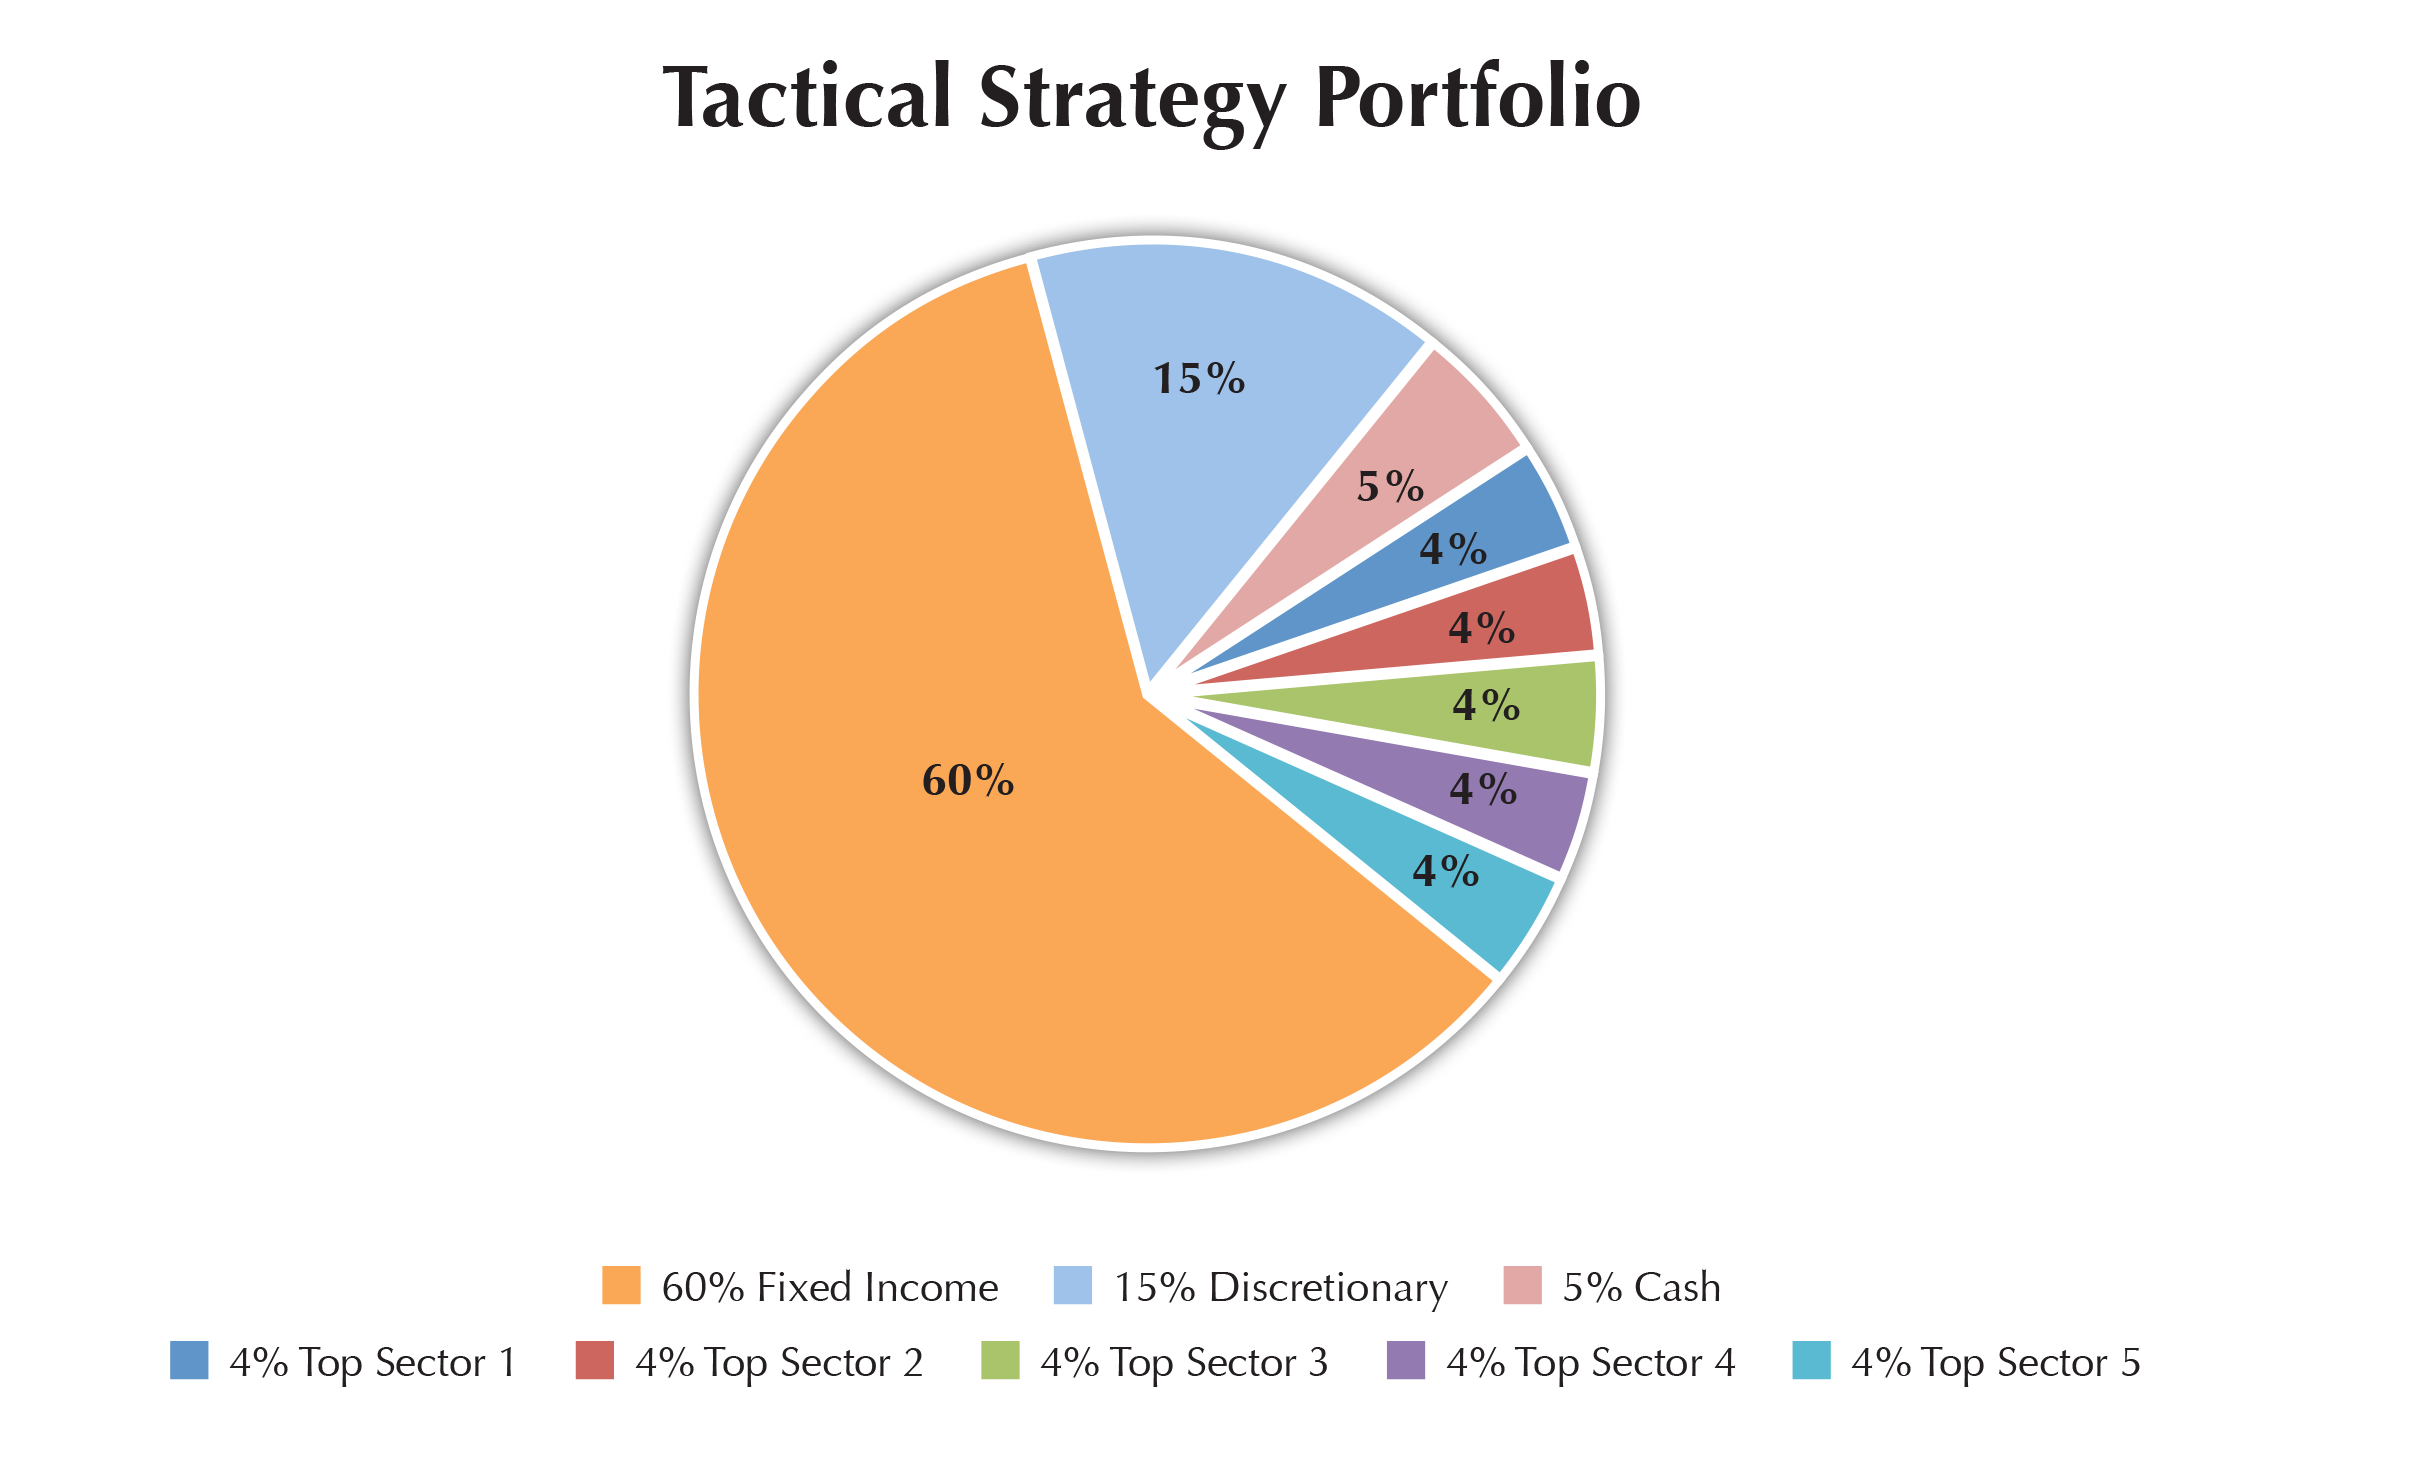 Hansen associates financial group tactical portfolio strategy pie chart showing tactical distribution of a portfolio nvjuhfo Image collections